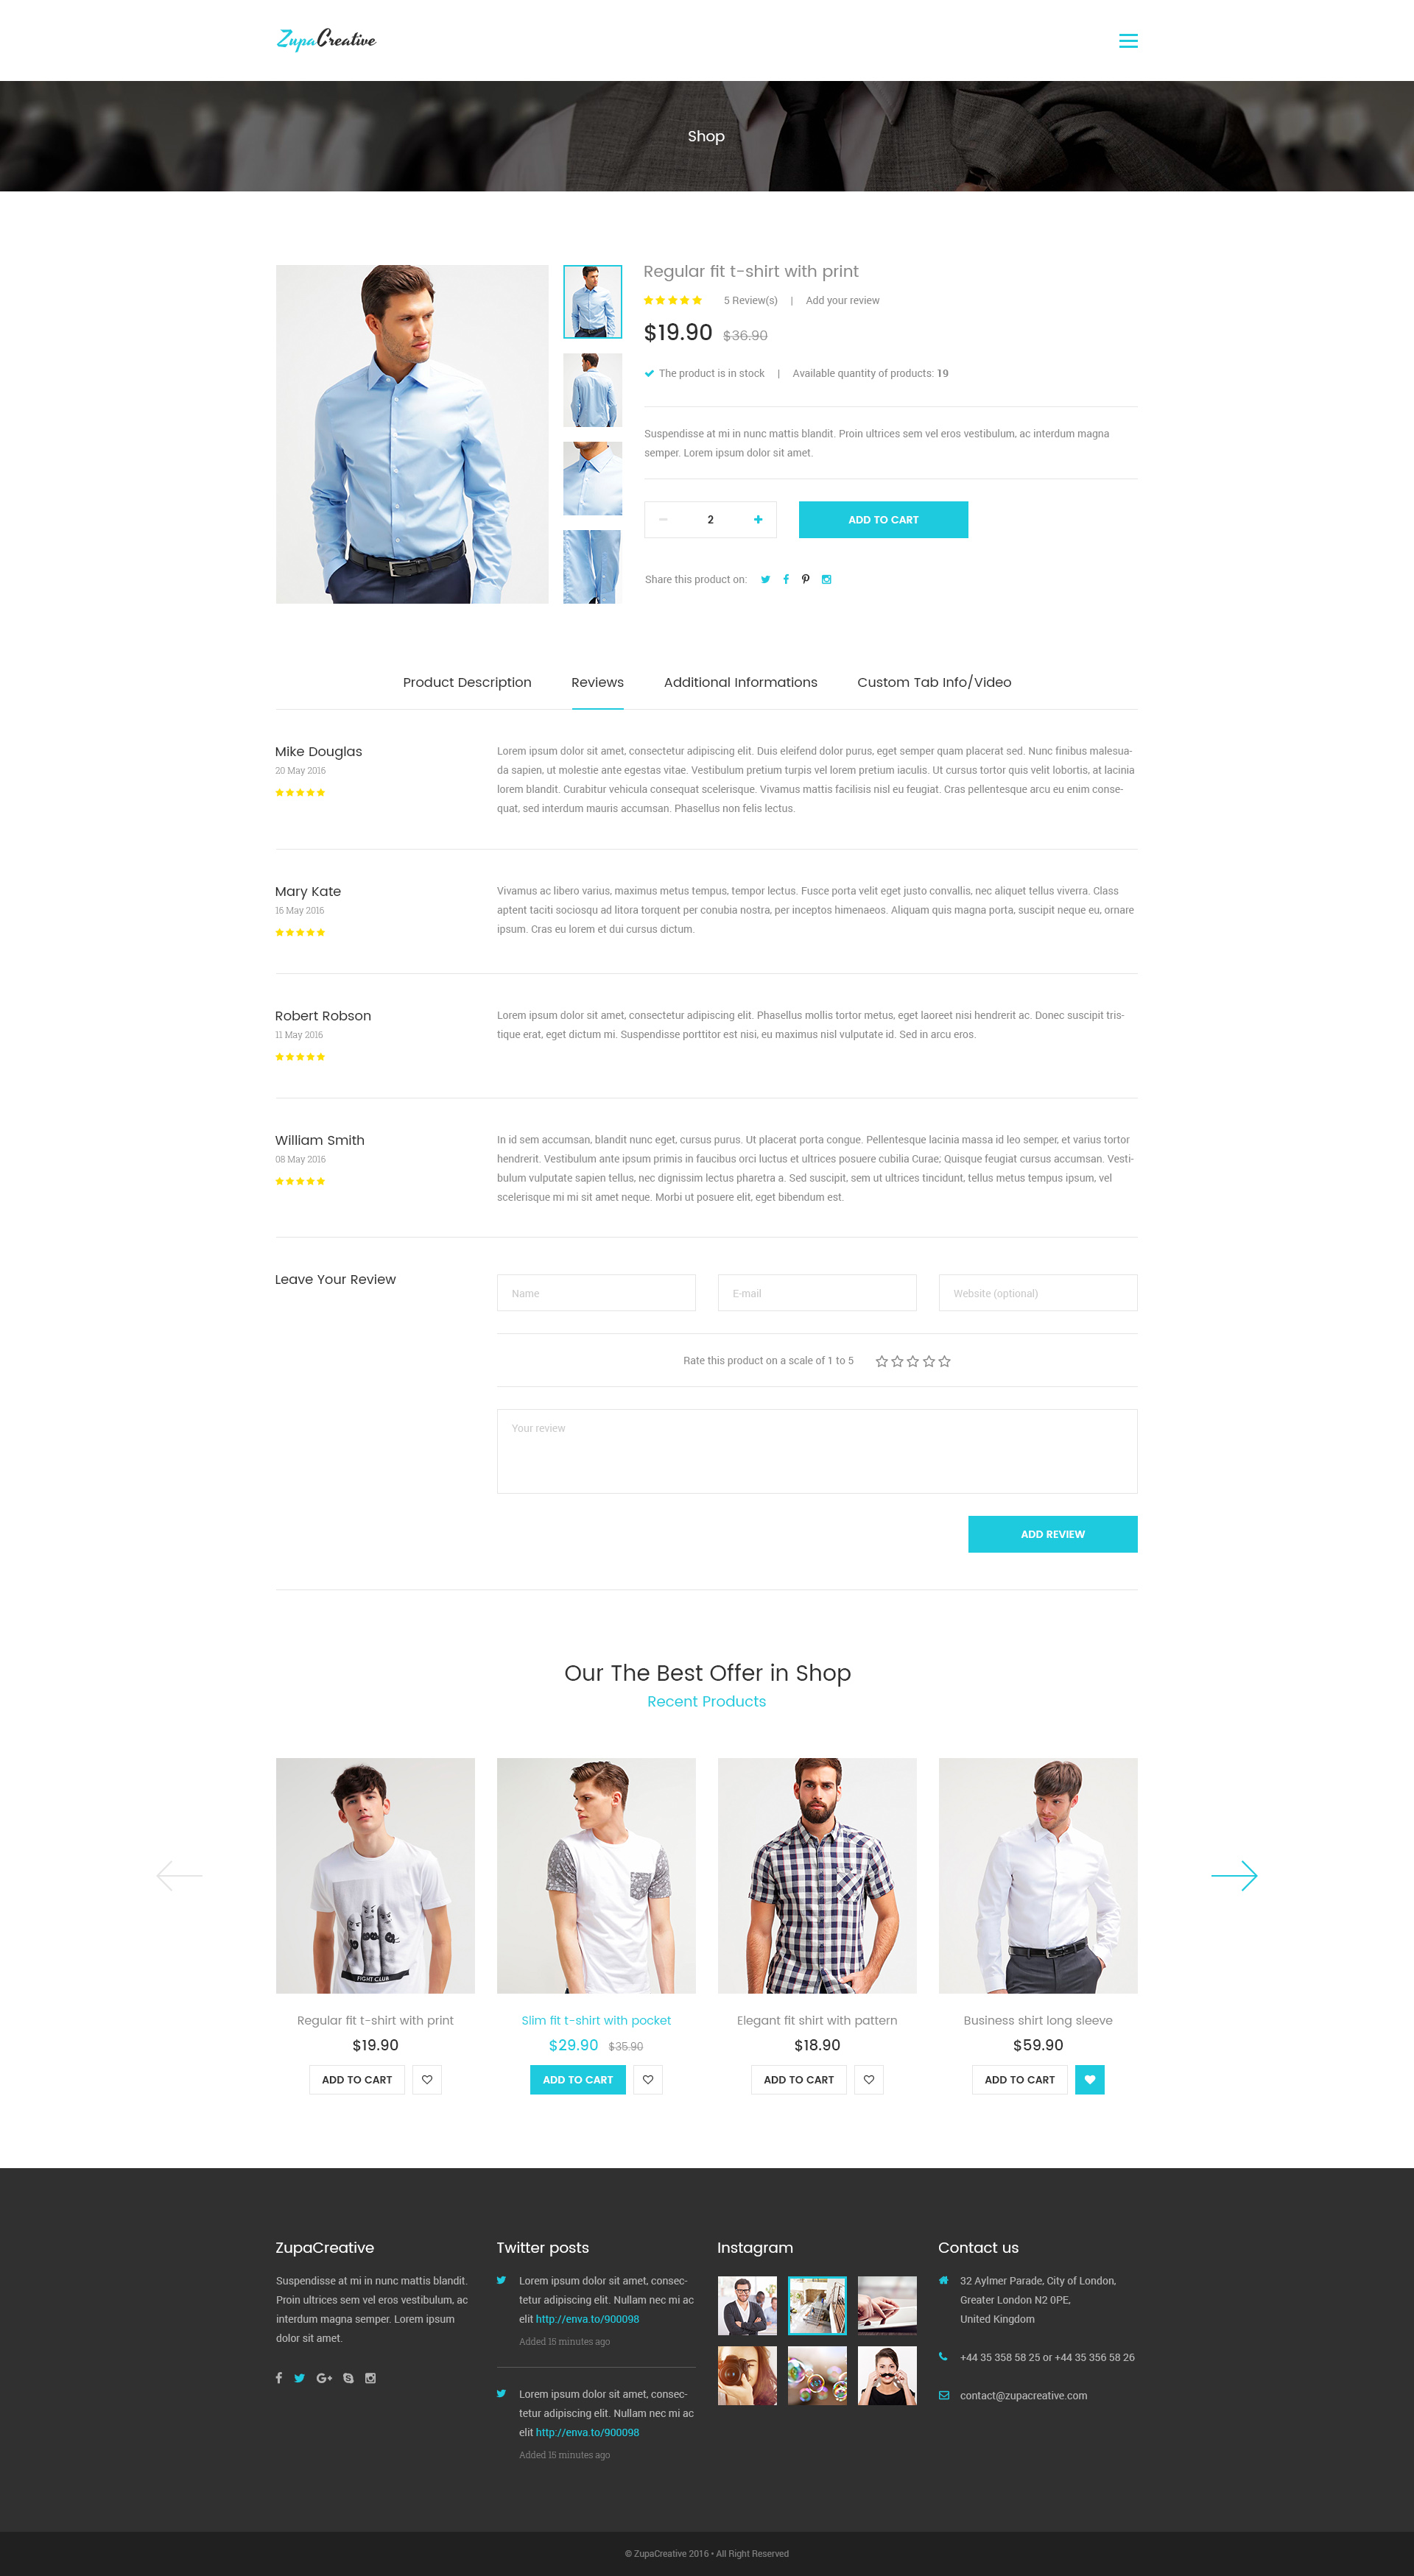 ZupaCreative Business and Creative Agency PSD Template by artbart – Product Description Template